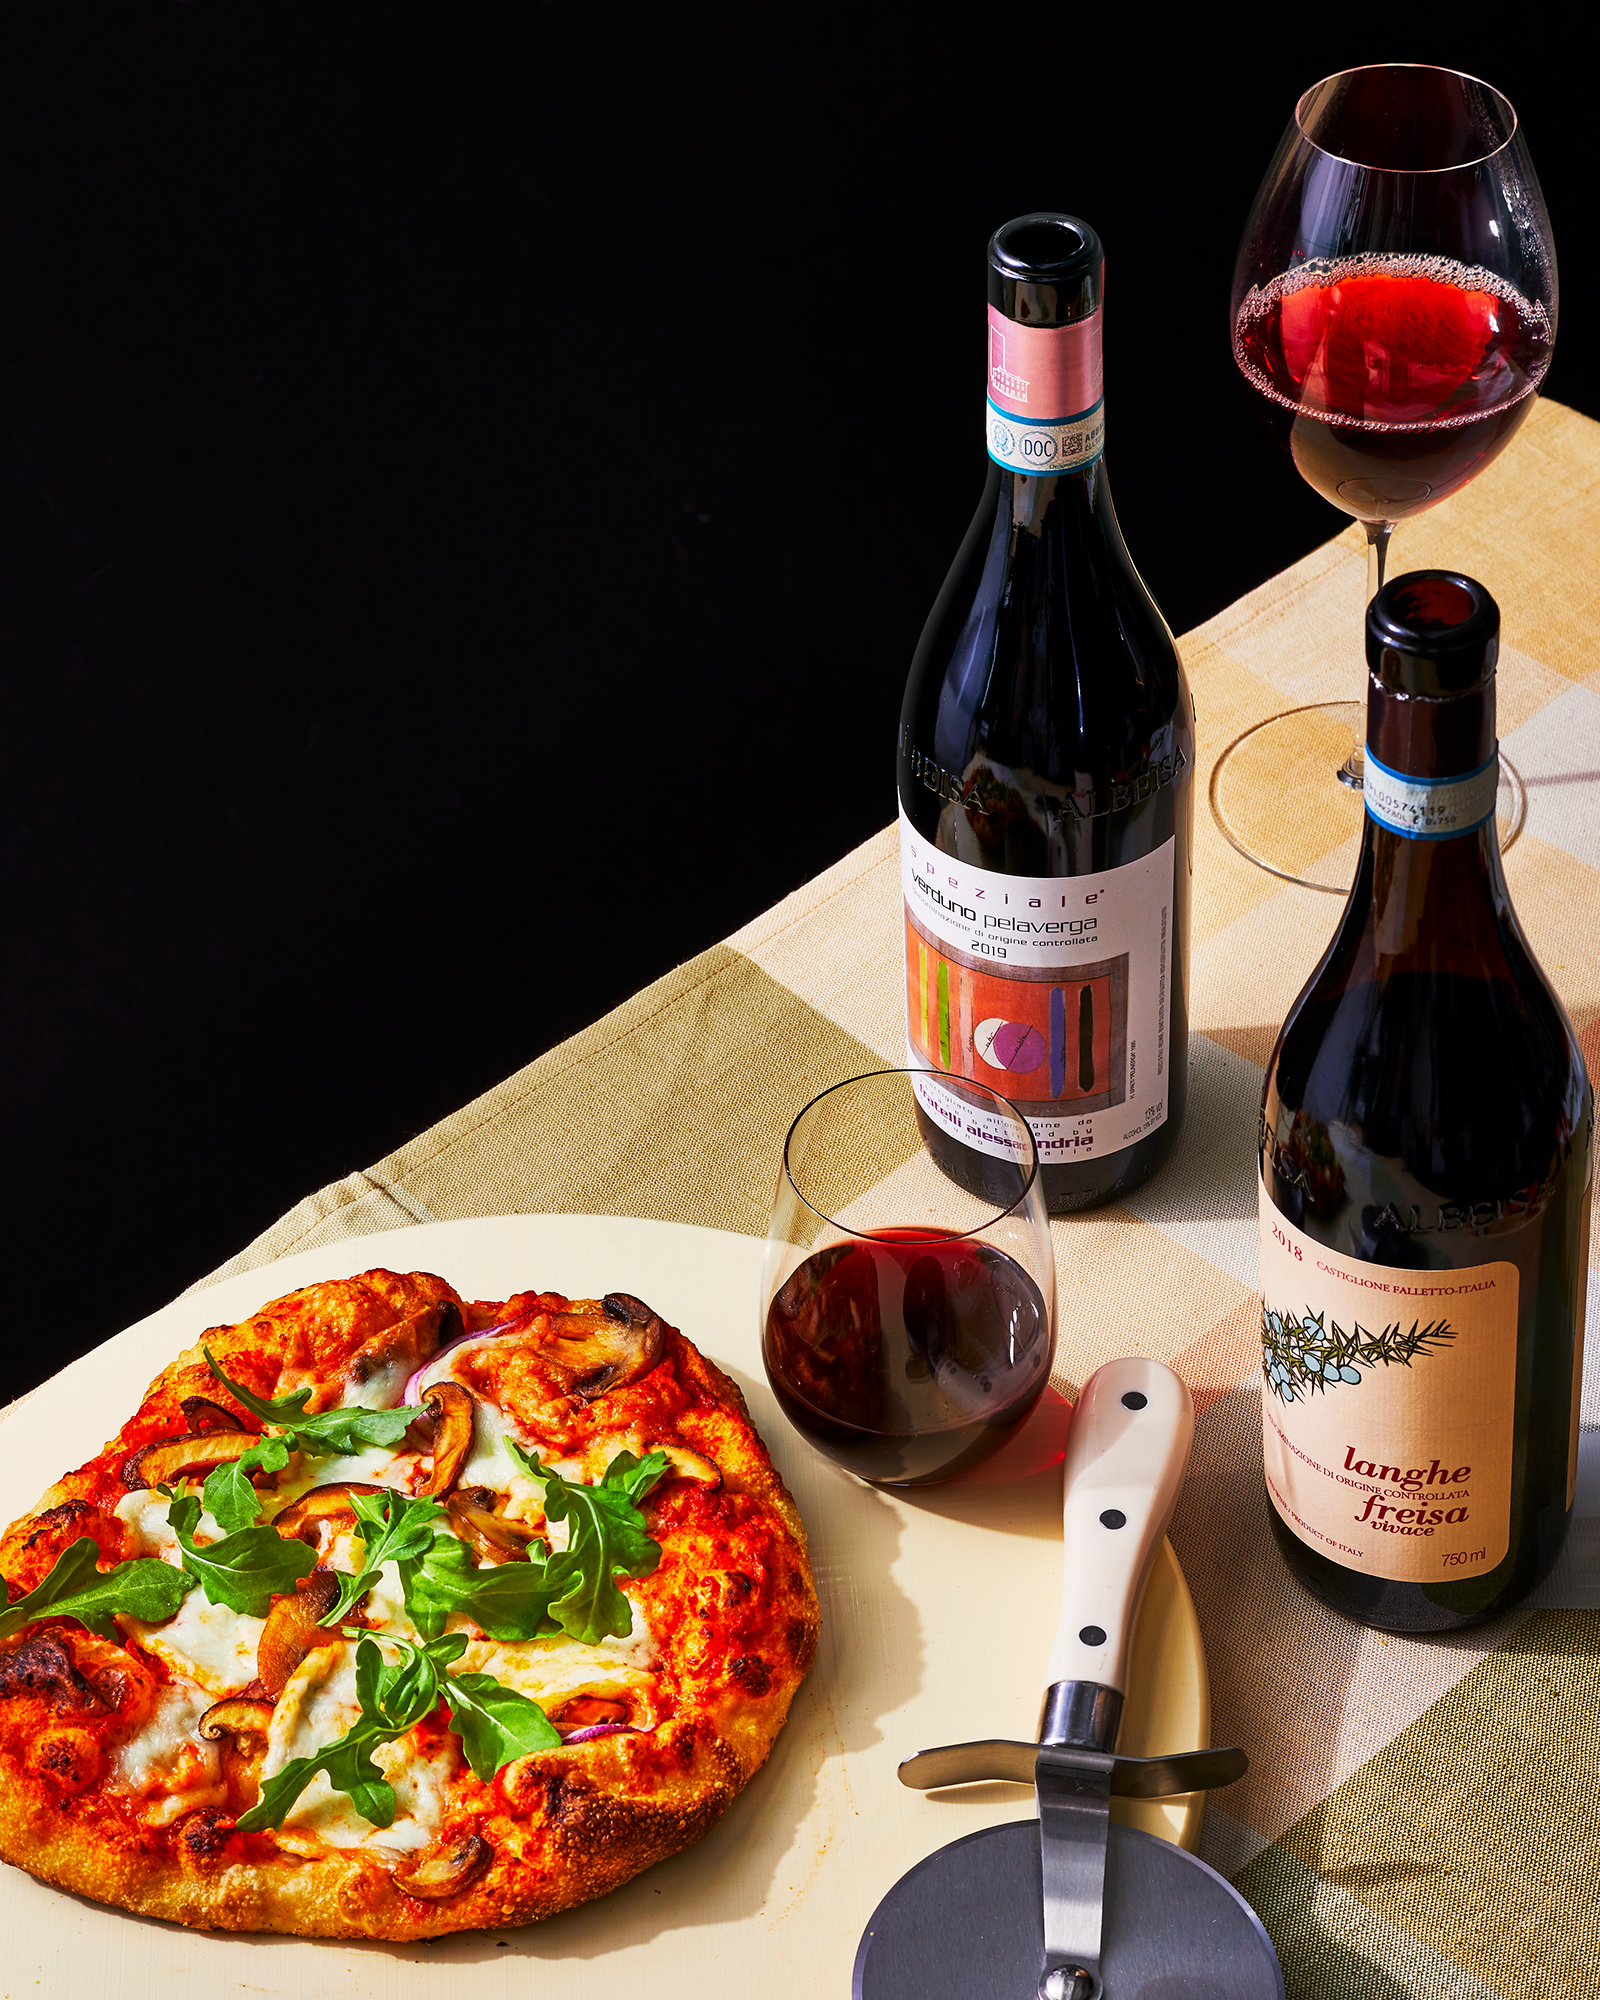 Veggie pizza with red wine